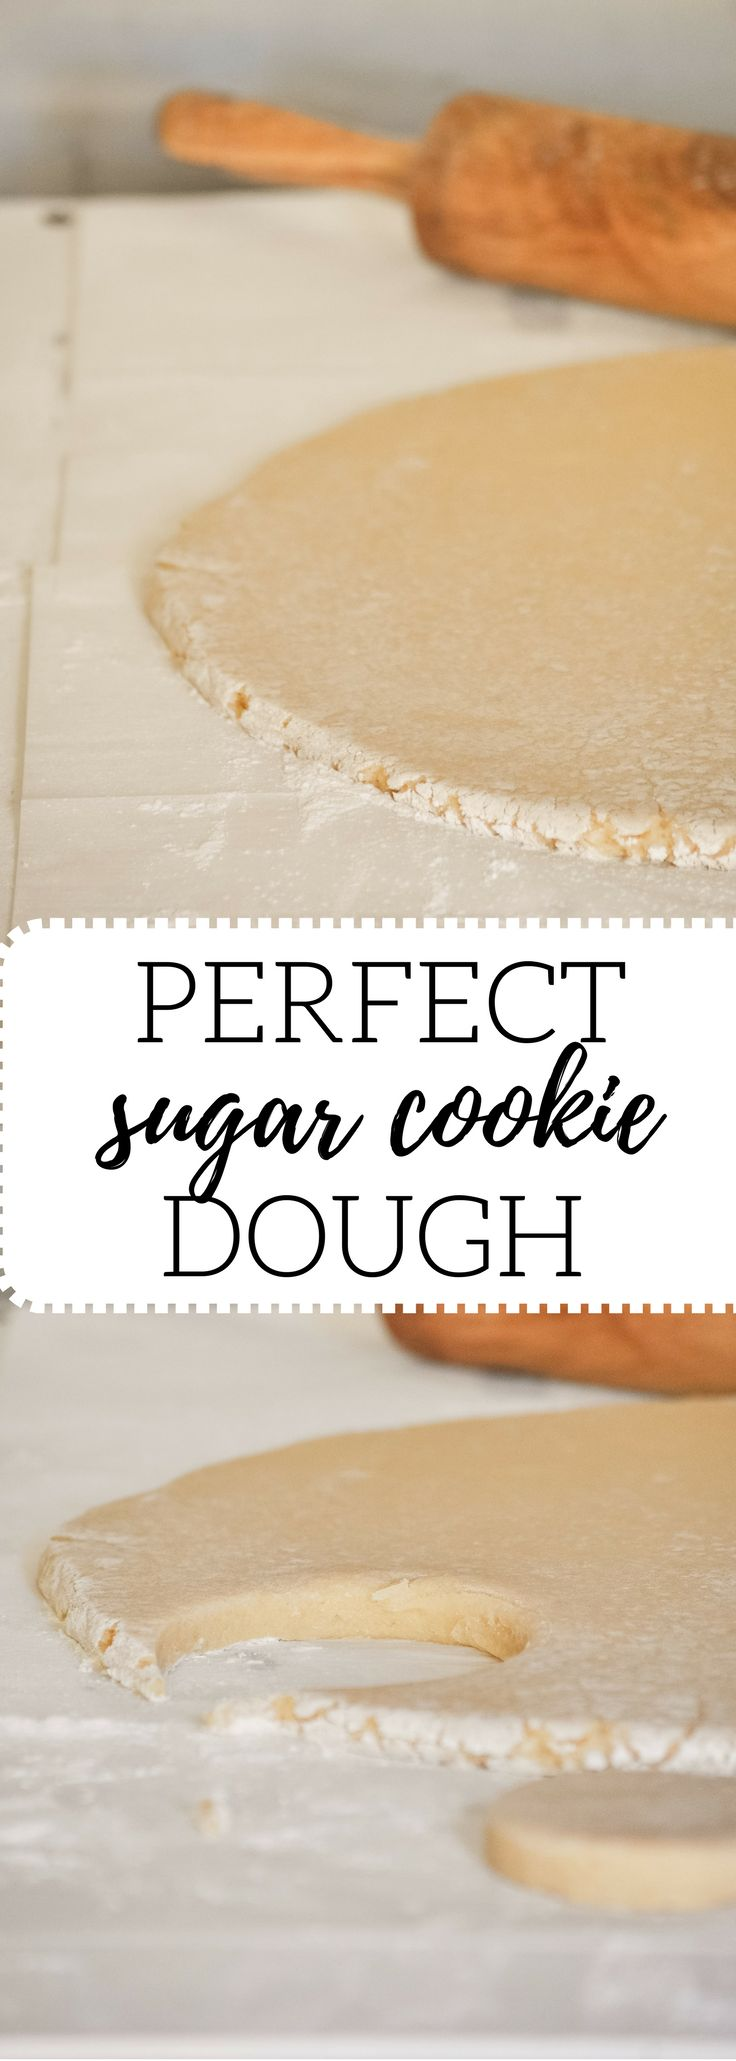 This is the easiest, best sugar cookie dough you'll ever make. If you are searching for that thick, soft, and moist sugar cookie, you have found it. The almond buttercream tops the cookie off perfectly.